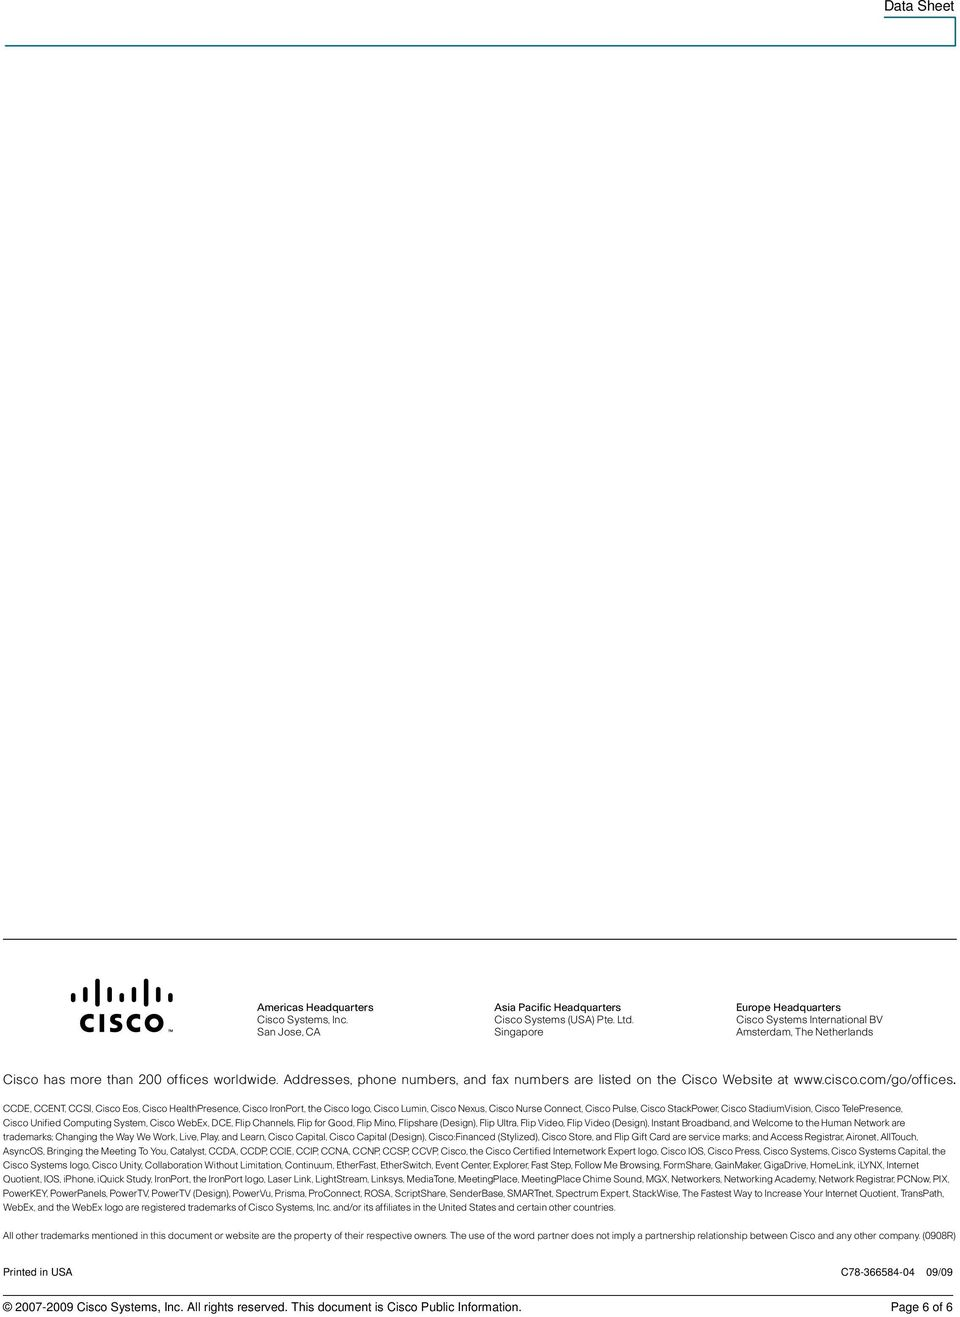 Addresses, phone numbers, and fax numbers are listed on the Cisco Website at www.cisco.com/go/offices.